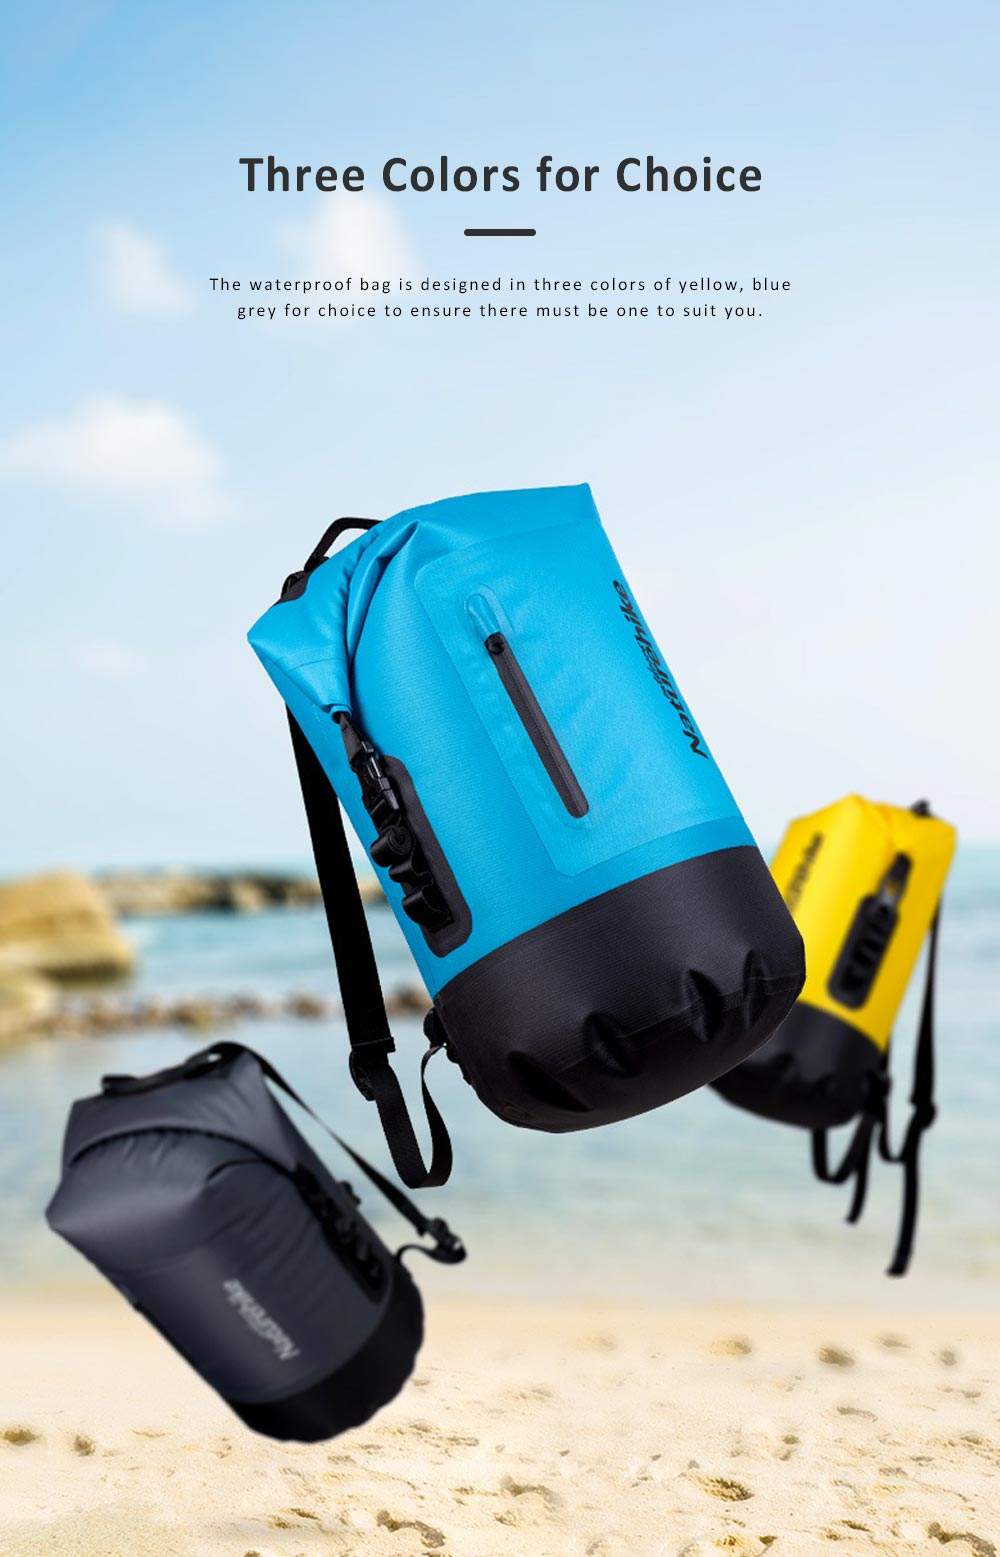 Waterproof Backpack for Drifting, Swimming, Large-capacity Dry Wet Separation Storage Bag, Outdoor Activity Used Backpack 6